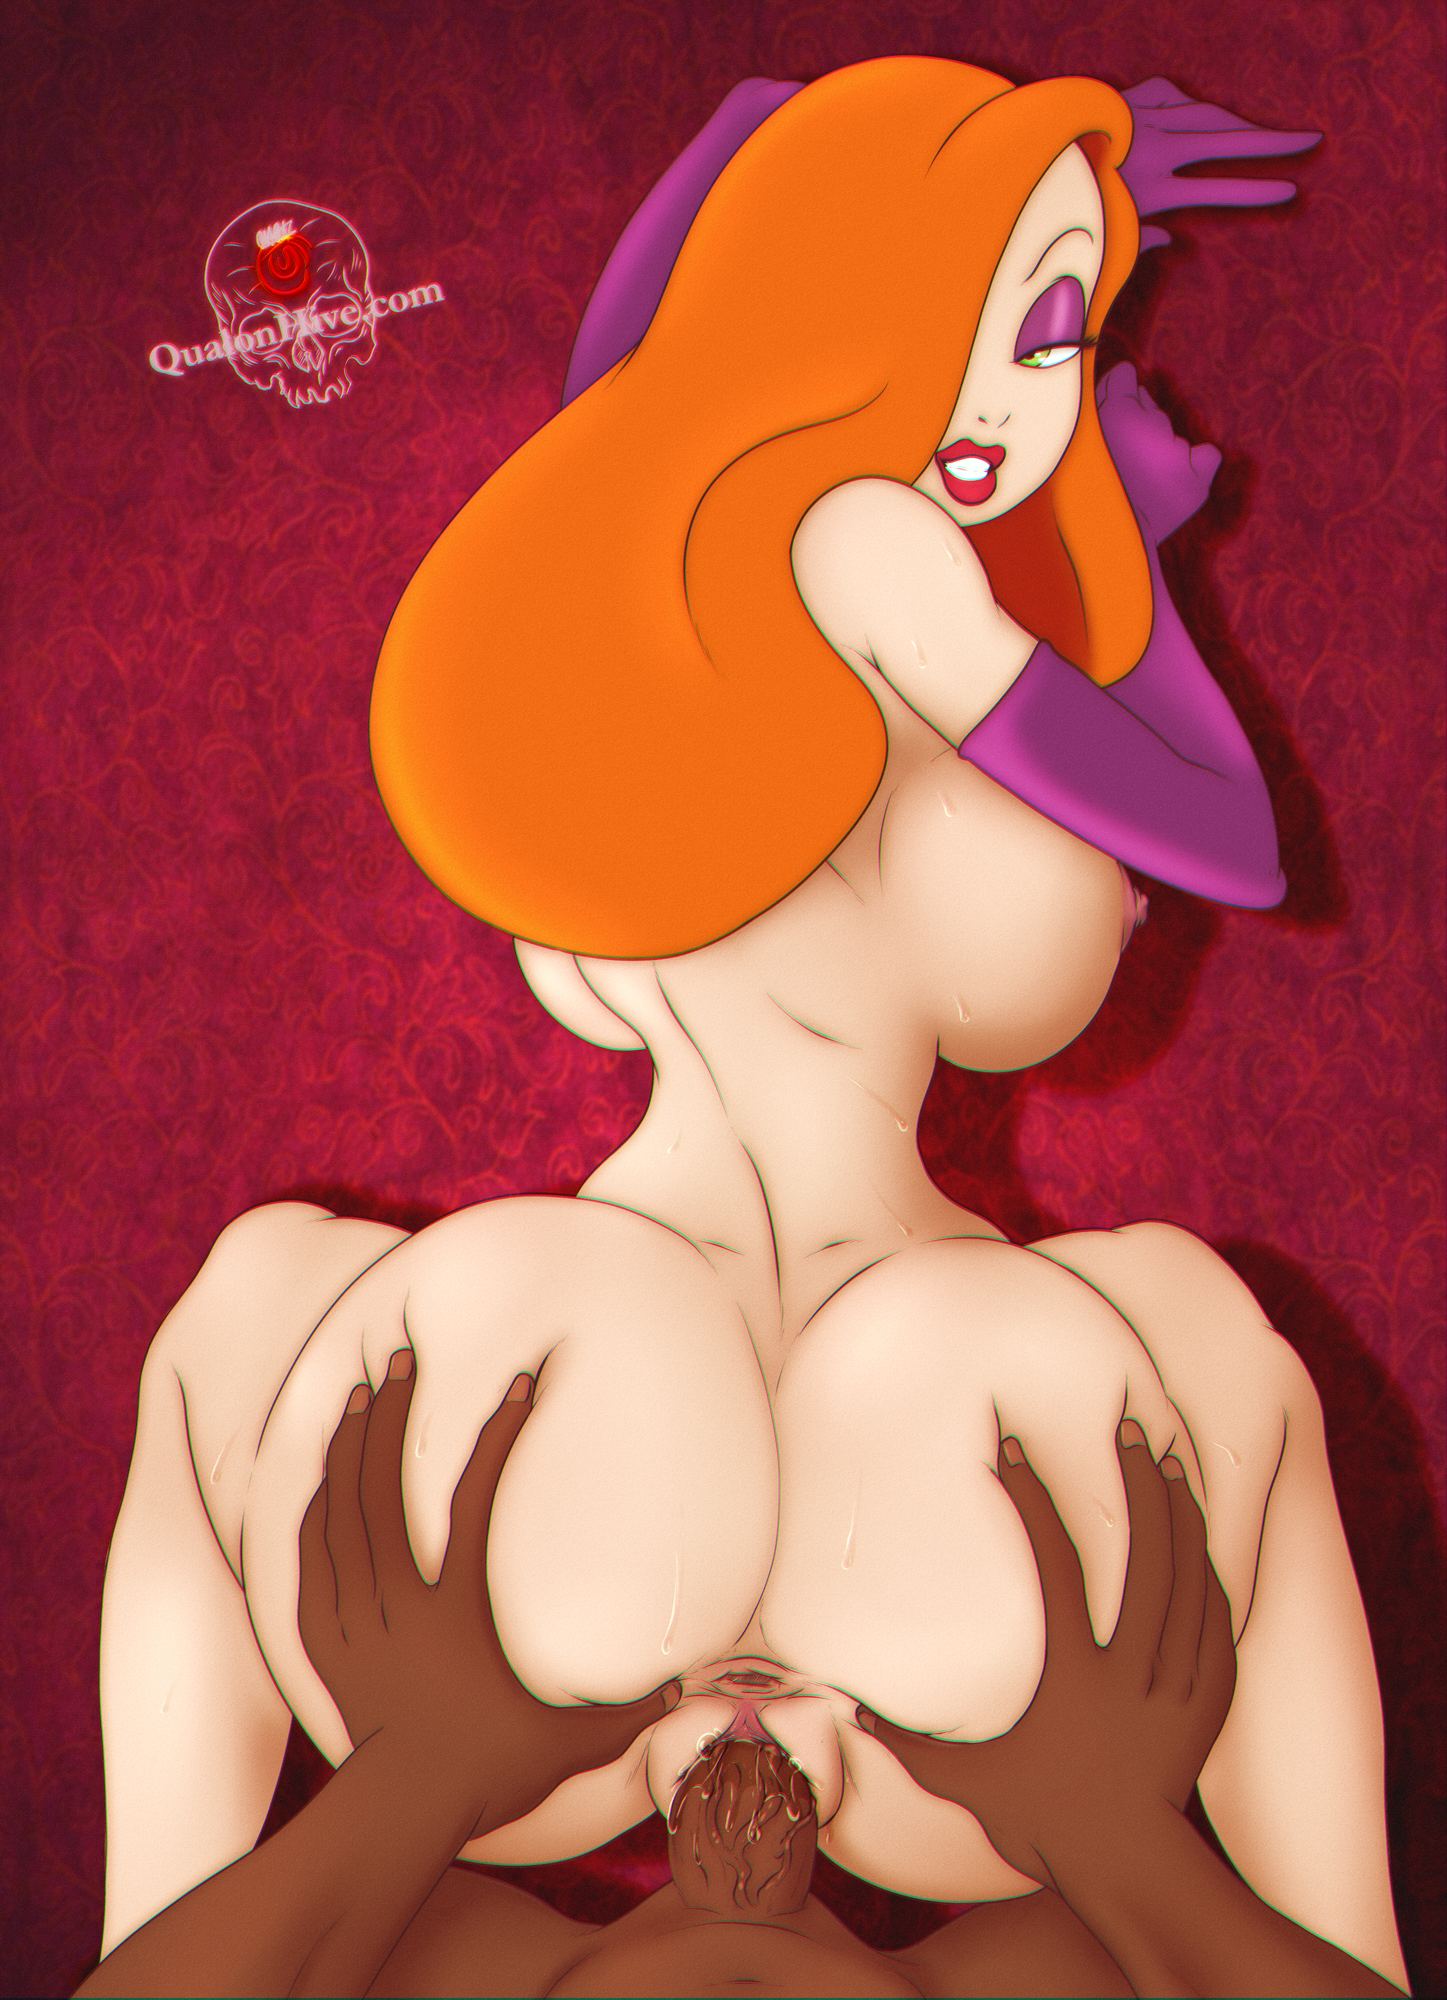 (2/2) Patreon Poll Winner – Jessica Rabbit III